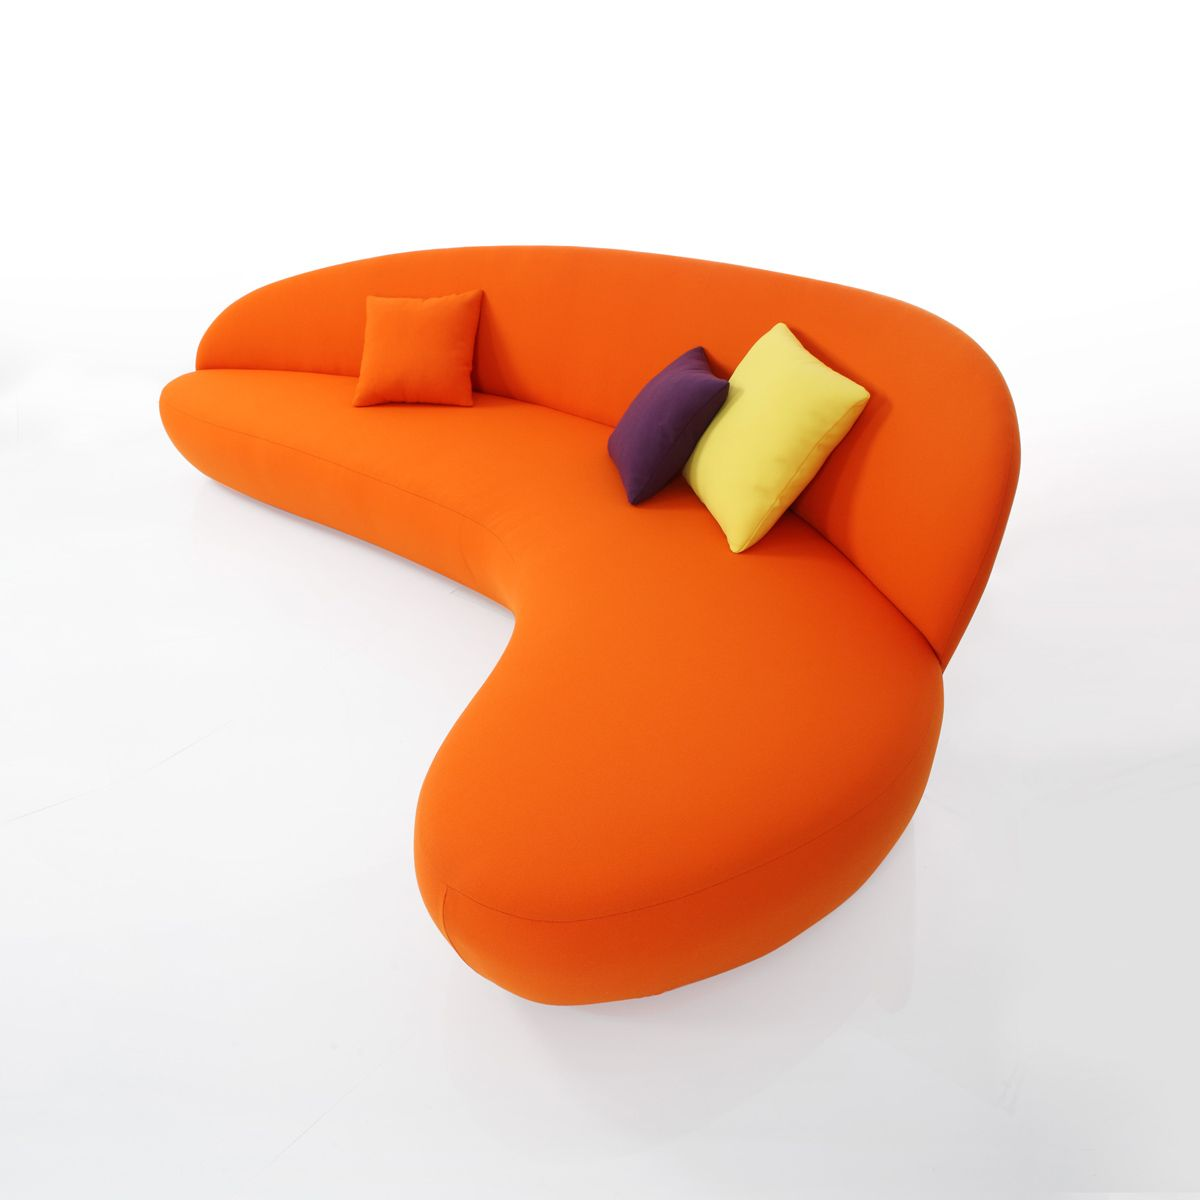 Canap orange newton meubles et atmosph re canap sofa pinterest - Meuble et atmosphere ...